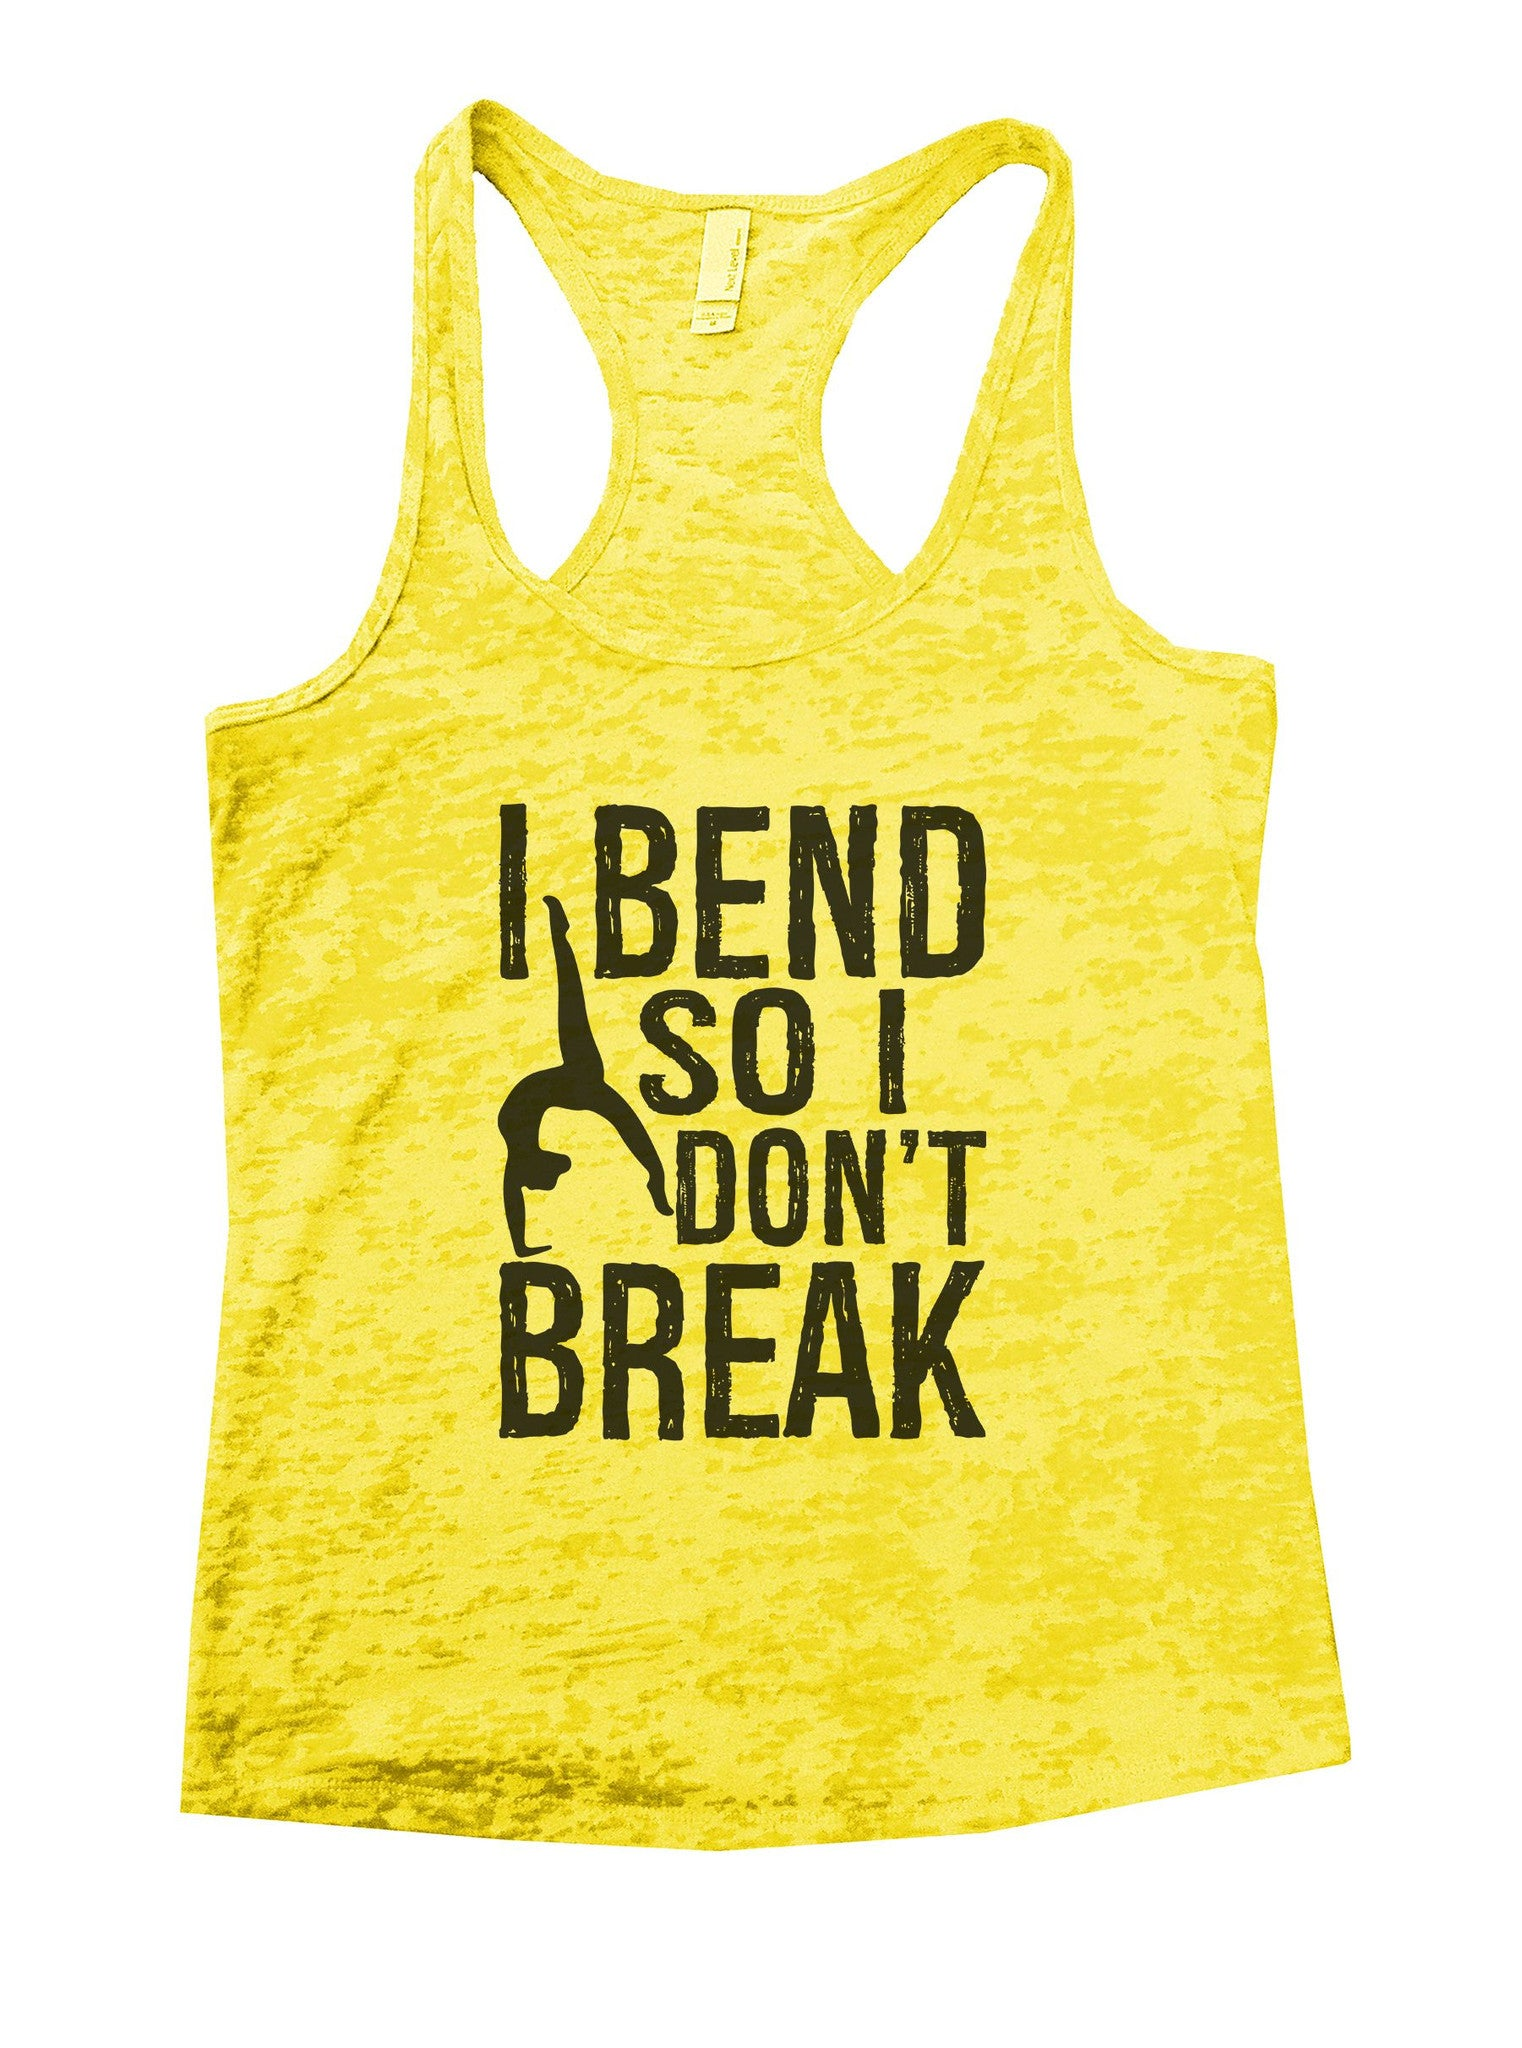 I Bend So I Don't Break Burnout Tank Top By BurnoutTankTops.com - 942 - Funny Shirts Tank Tops Burnouts and Triblends  - 7